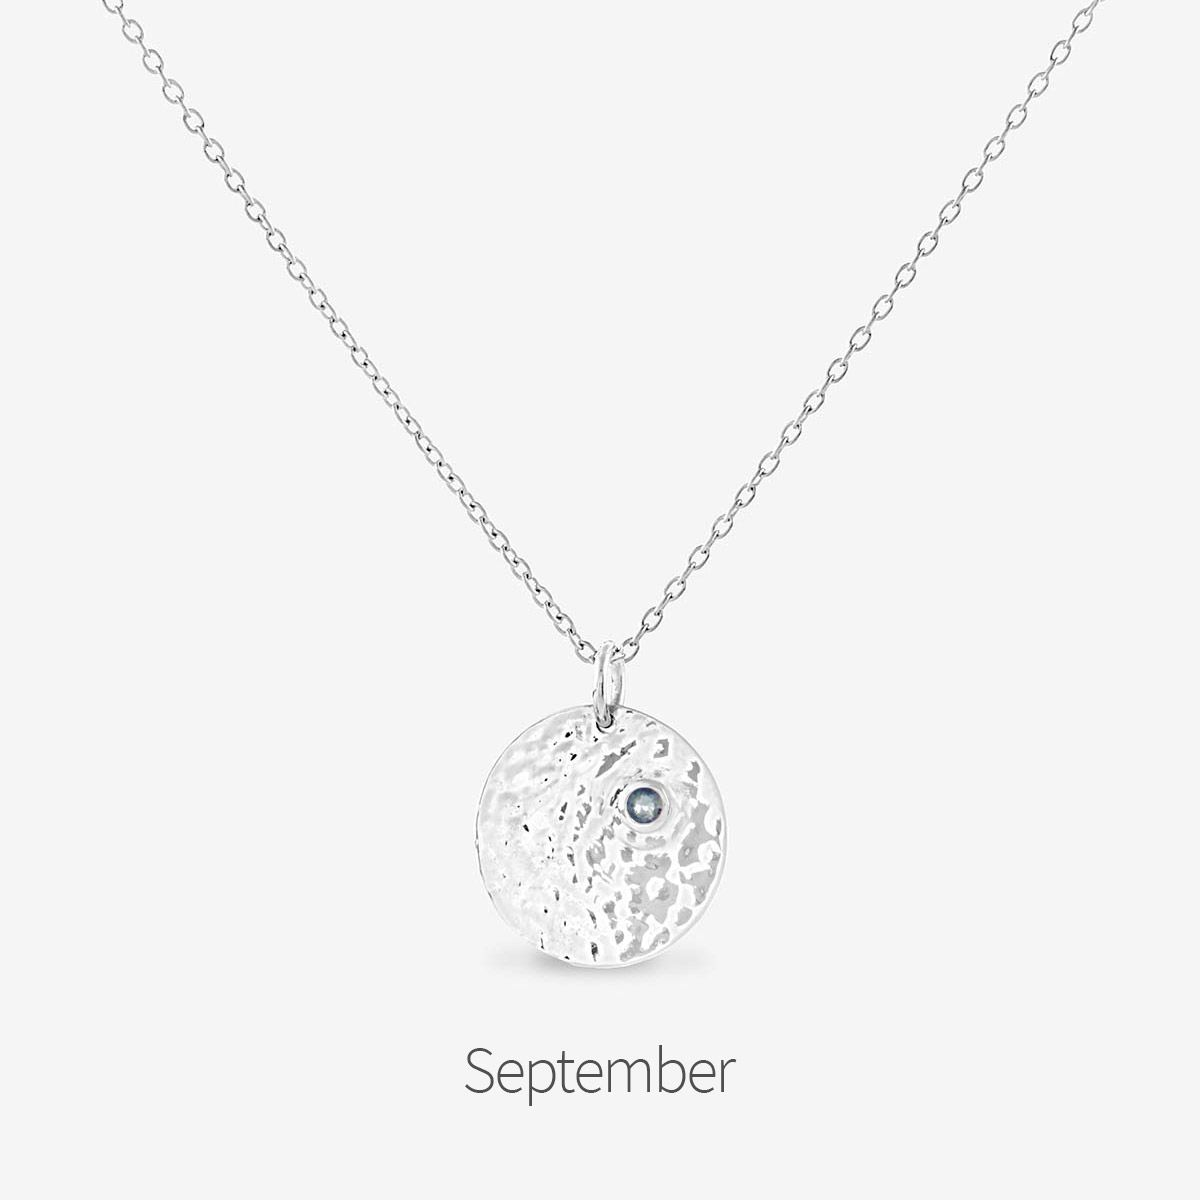 Birthstone September - Halsketten - Silber